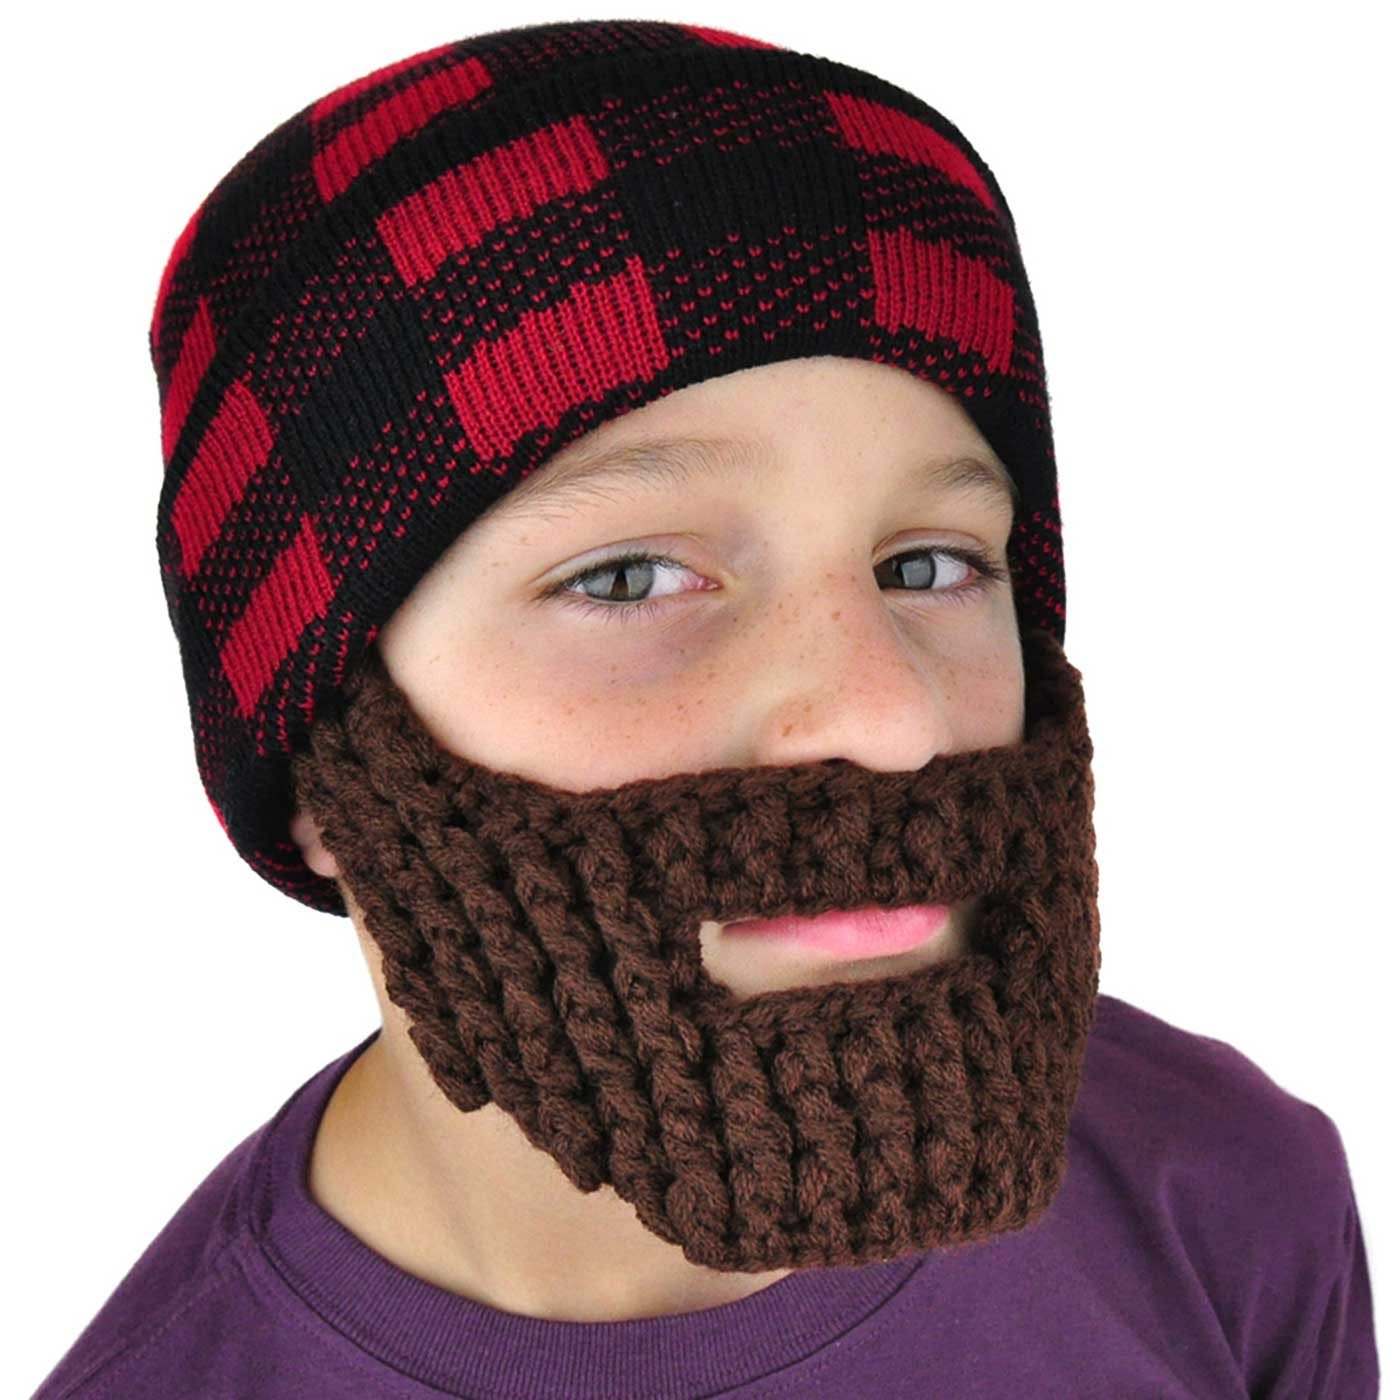 Beanie with Beard Winter Hat - Lumberjack - Neon Eaters - Boys, Cute Knit Toque NeonEaters